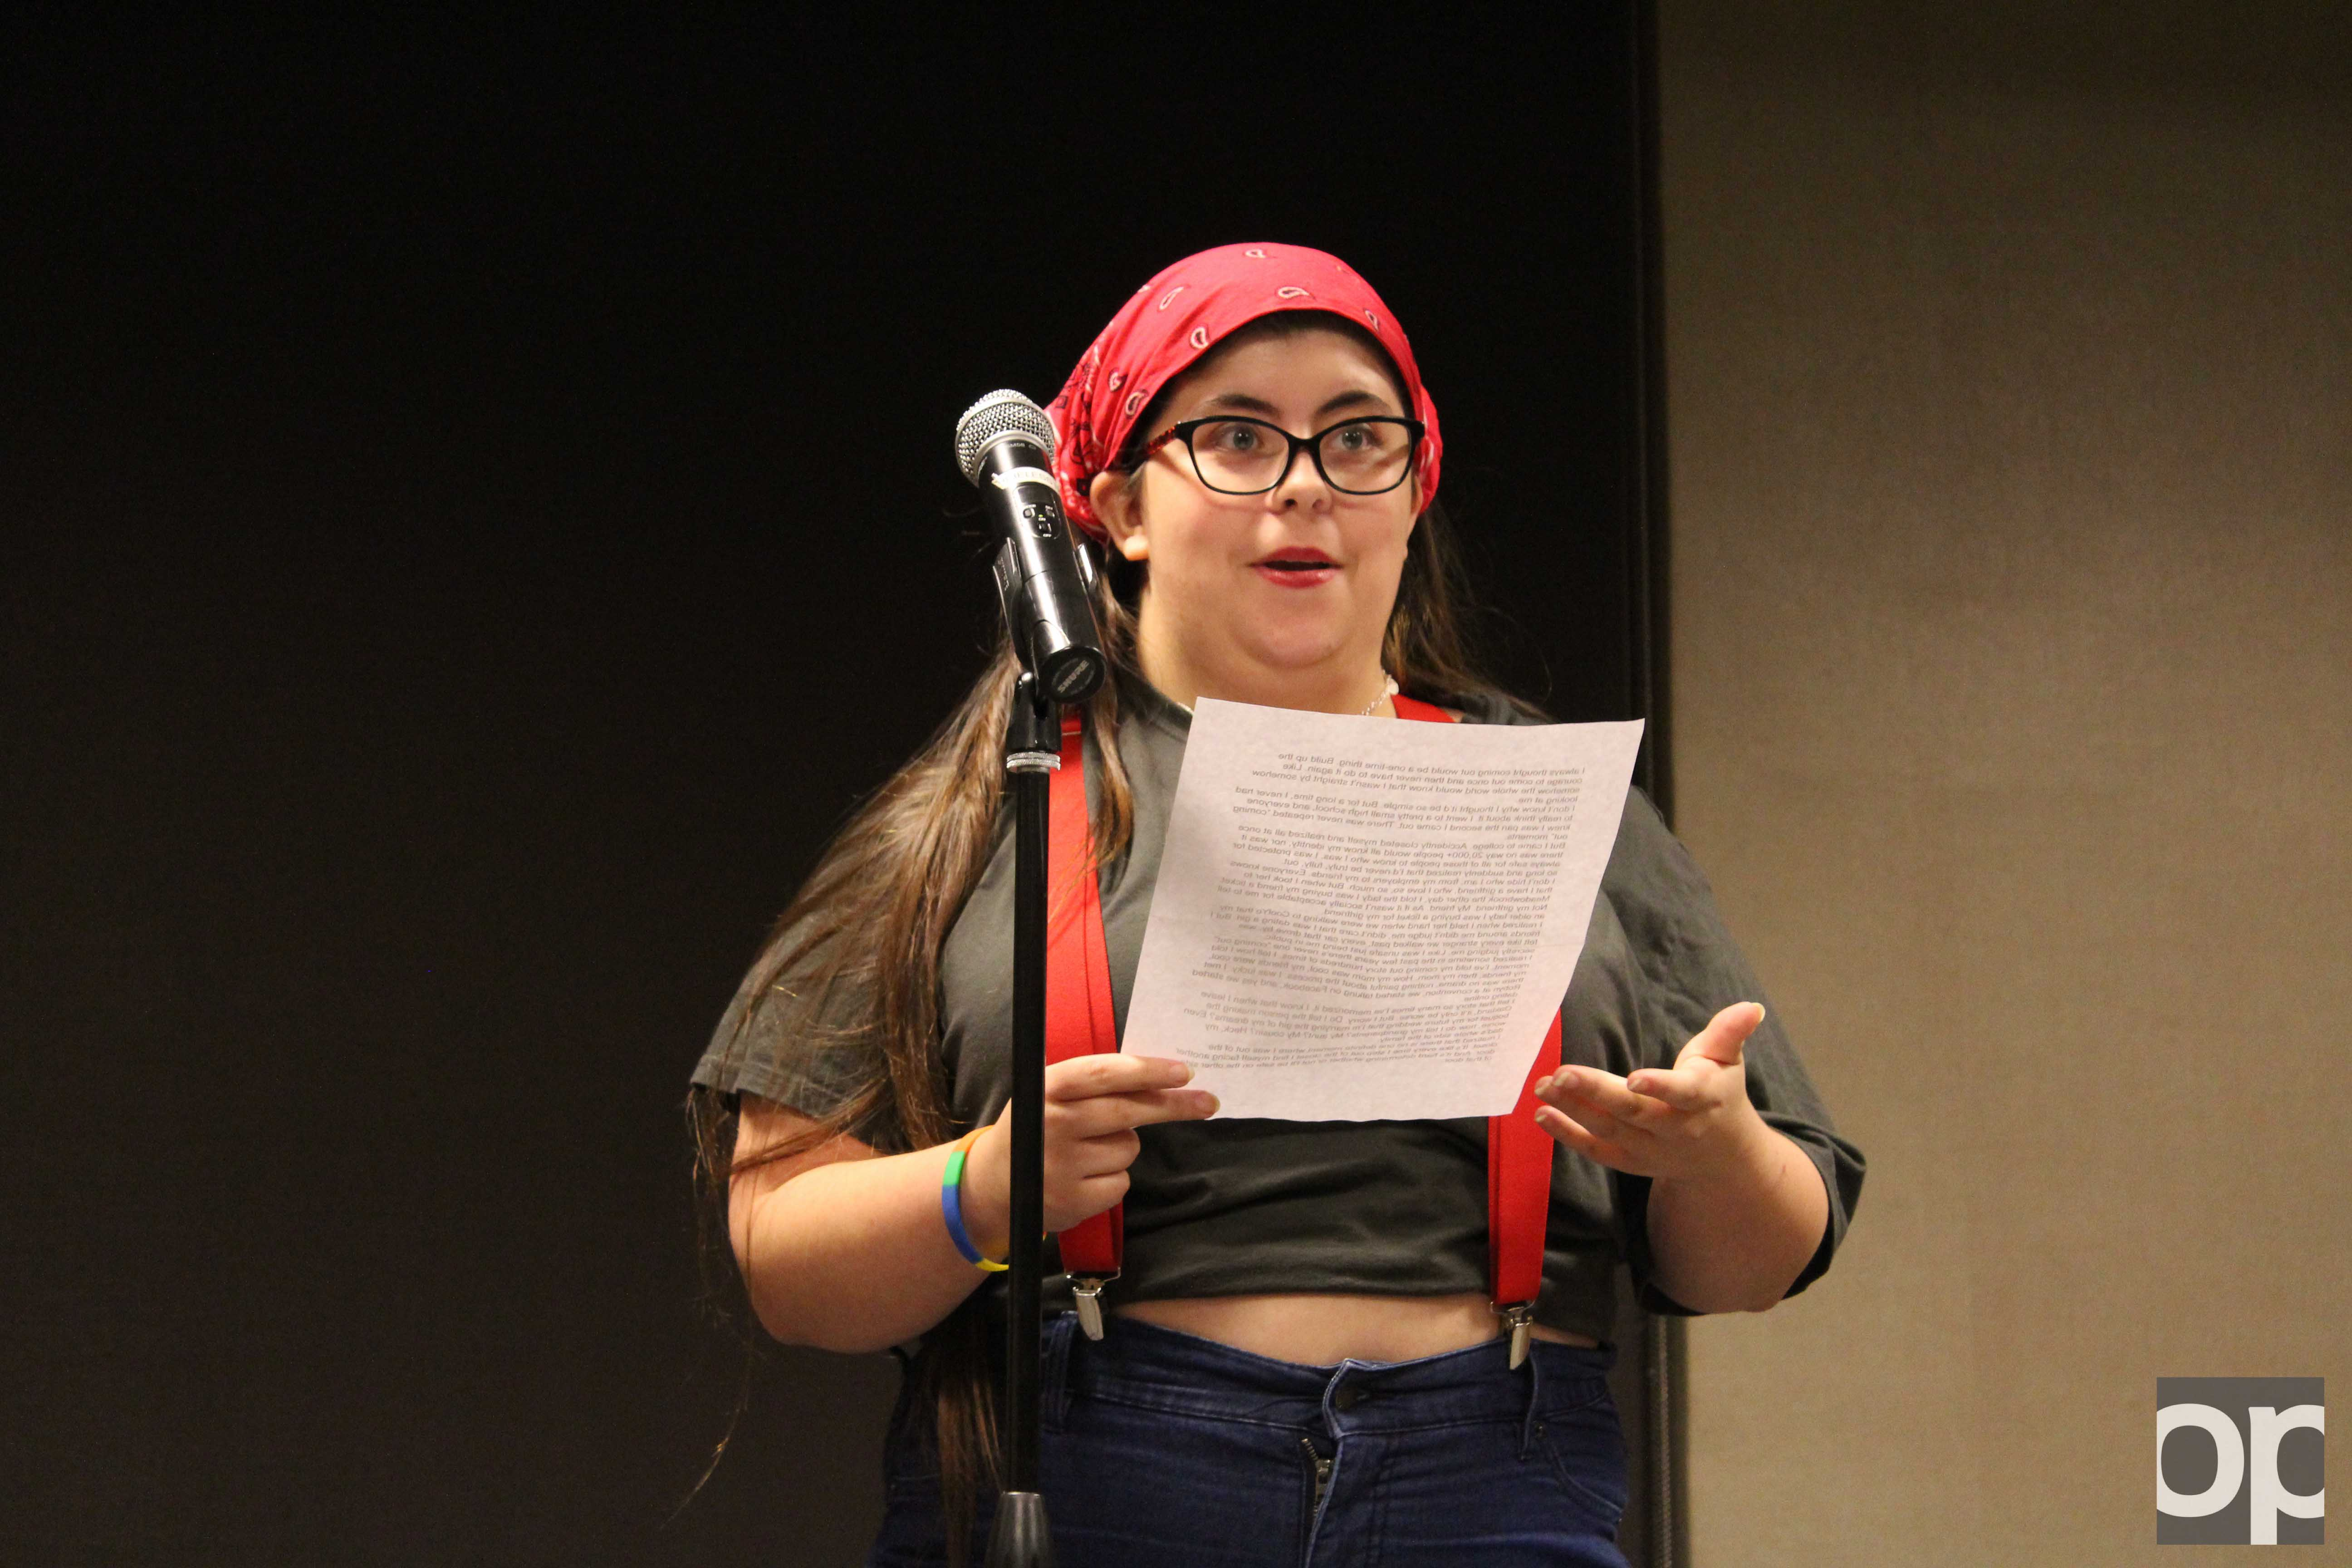 Cheyanne Kramer performs a monologue at the event.